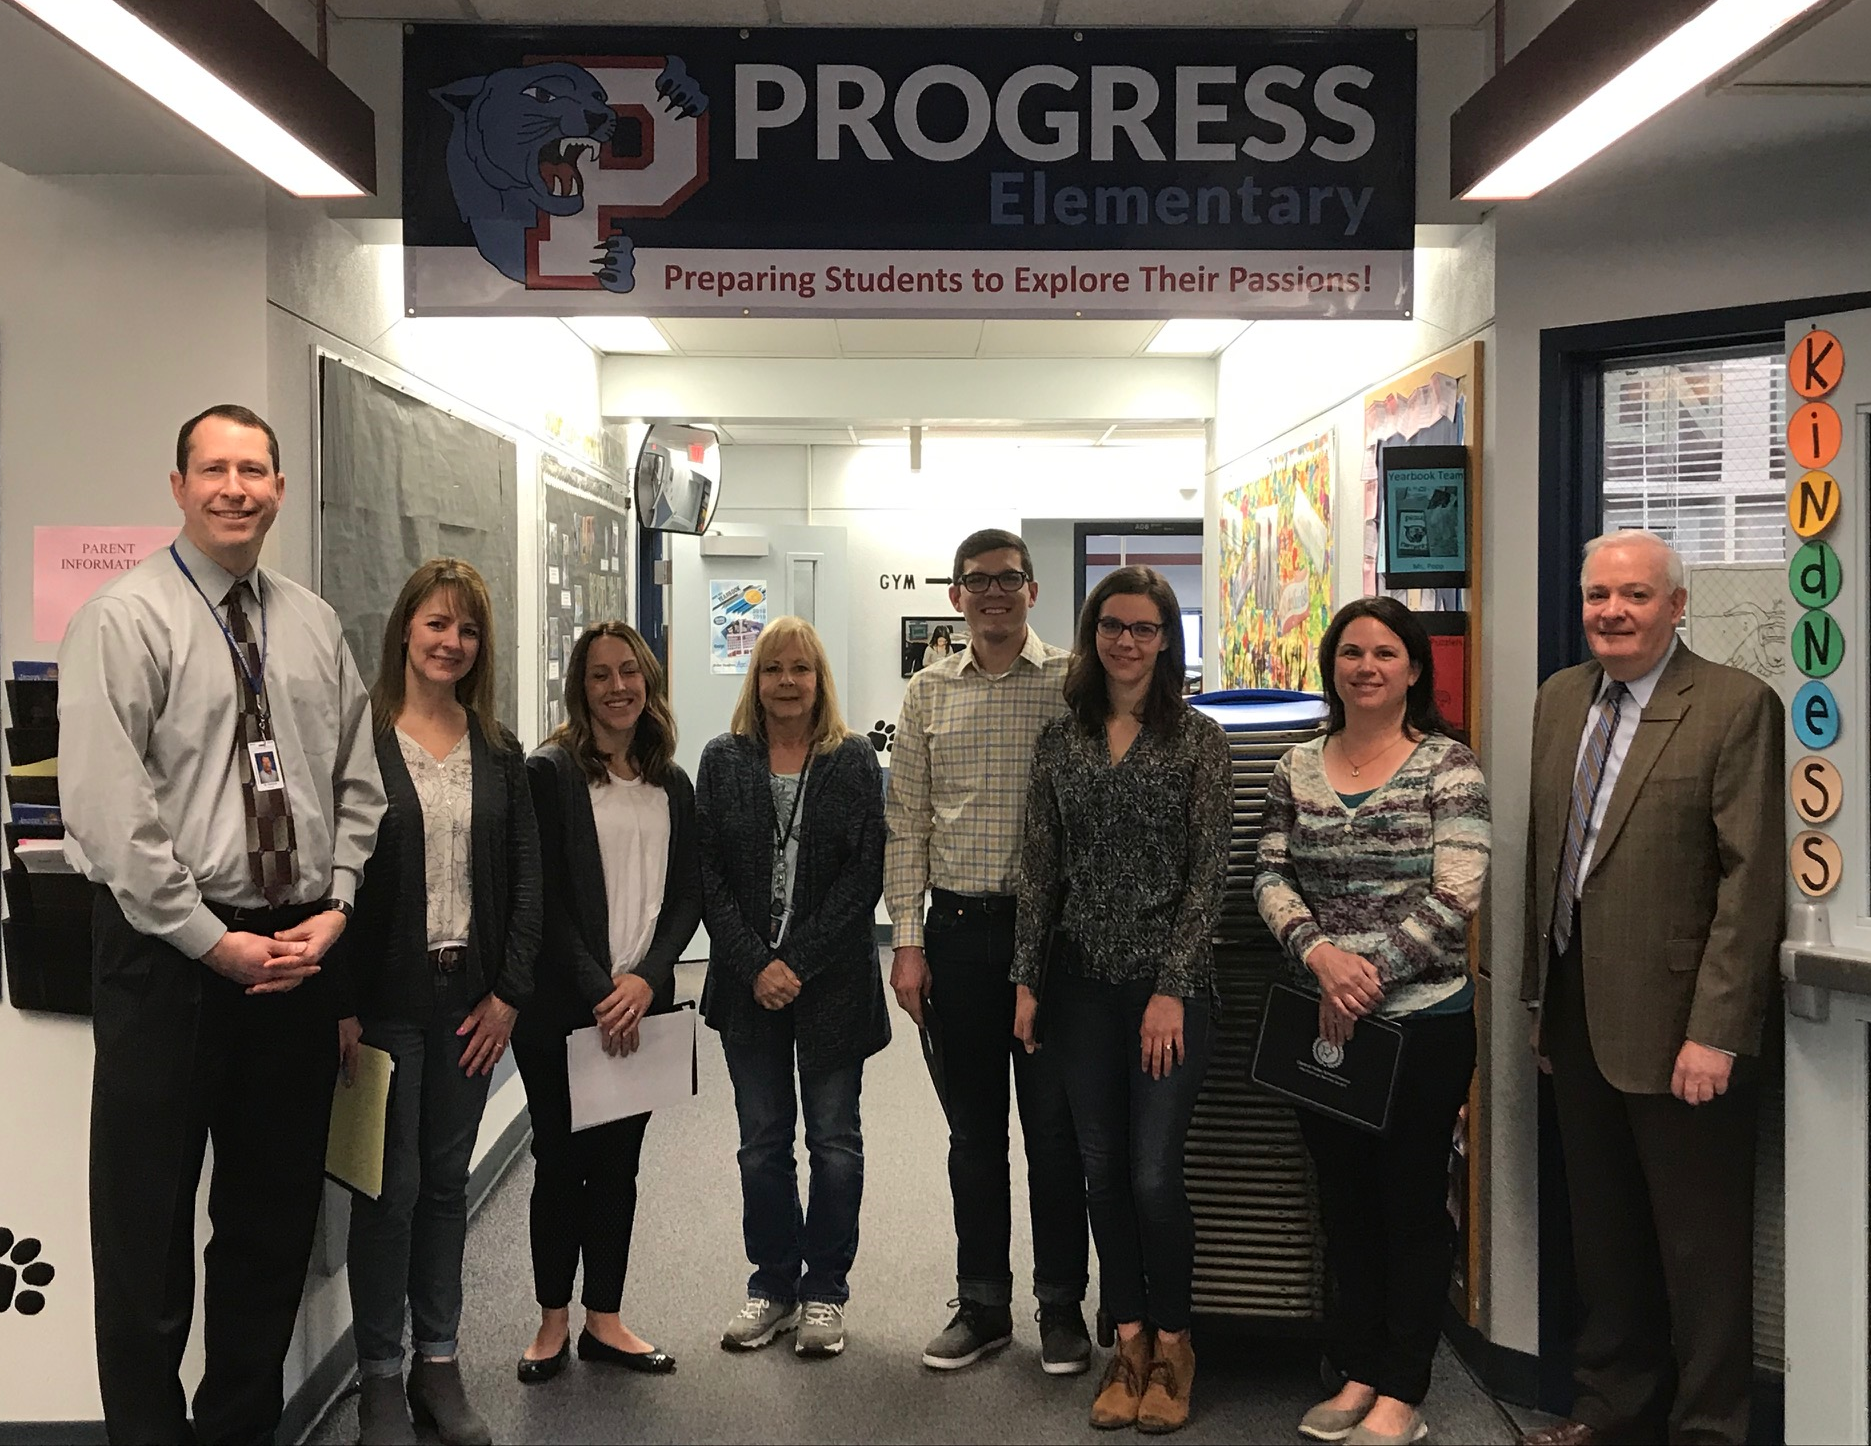 Progress Elementary Nominees